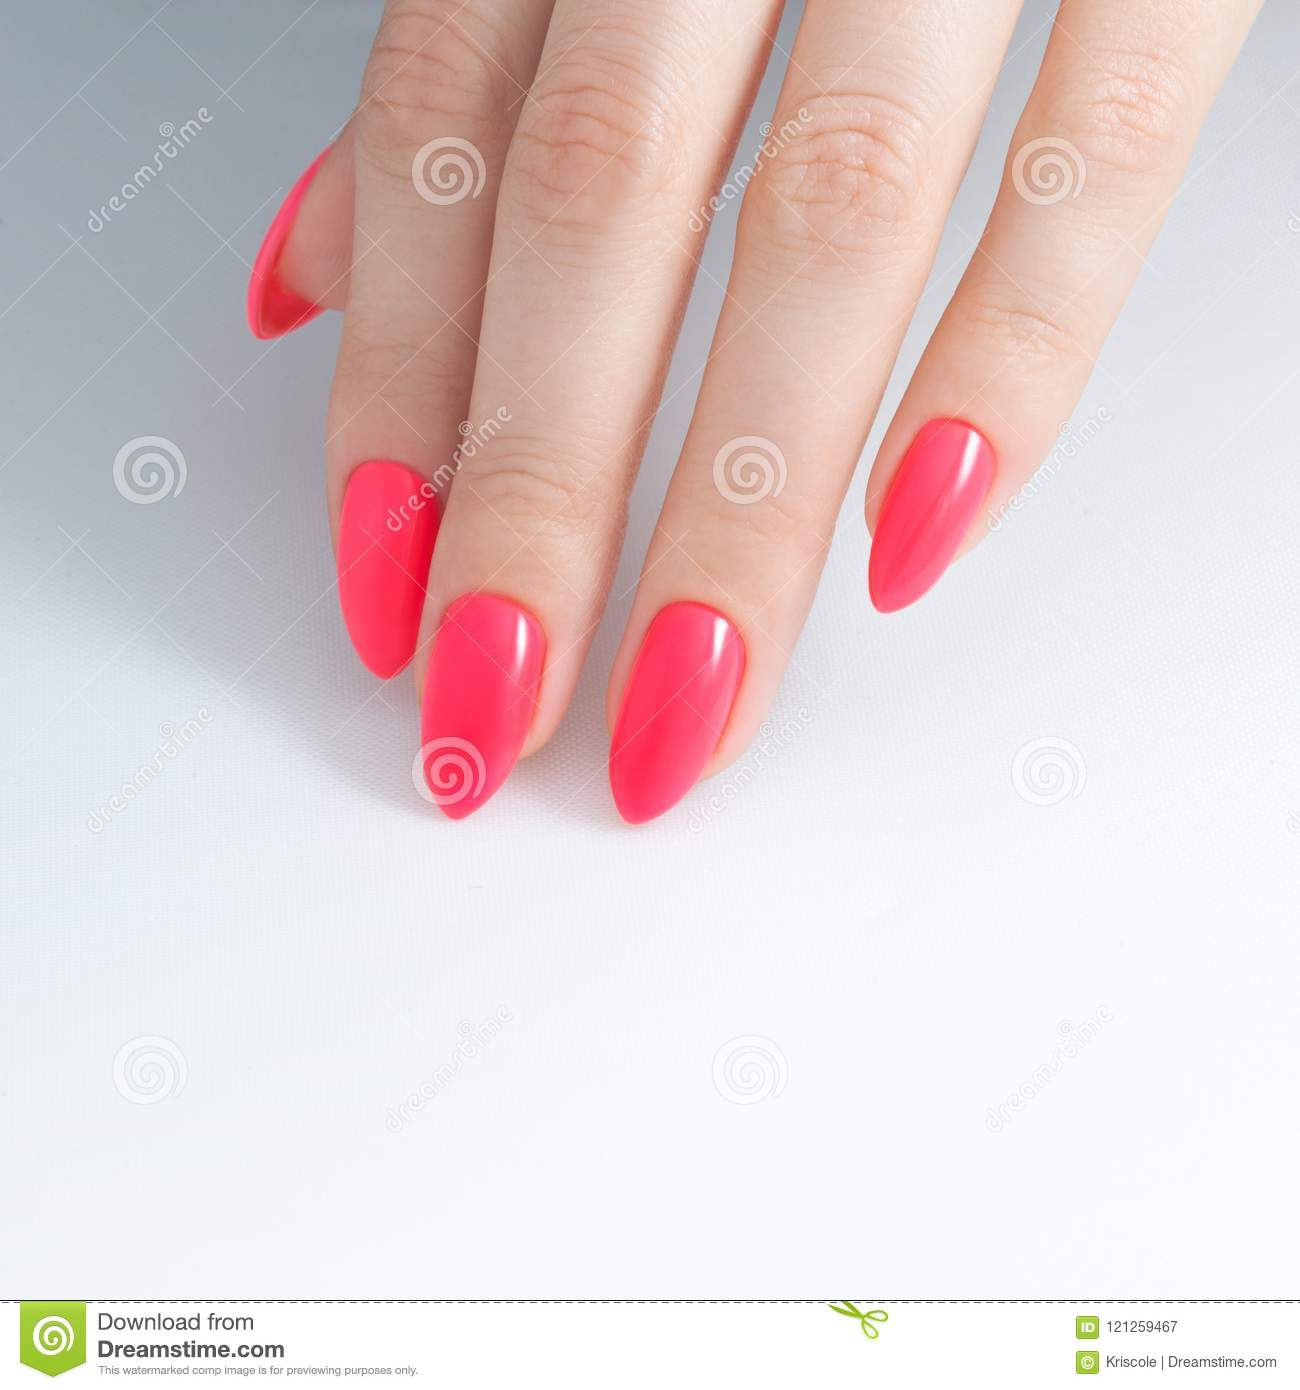 Paint Your Nails. Nail Polish, Gel Coating Stock Image - Image of ...